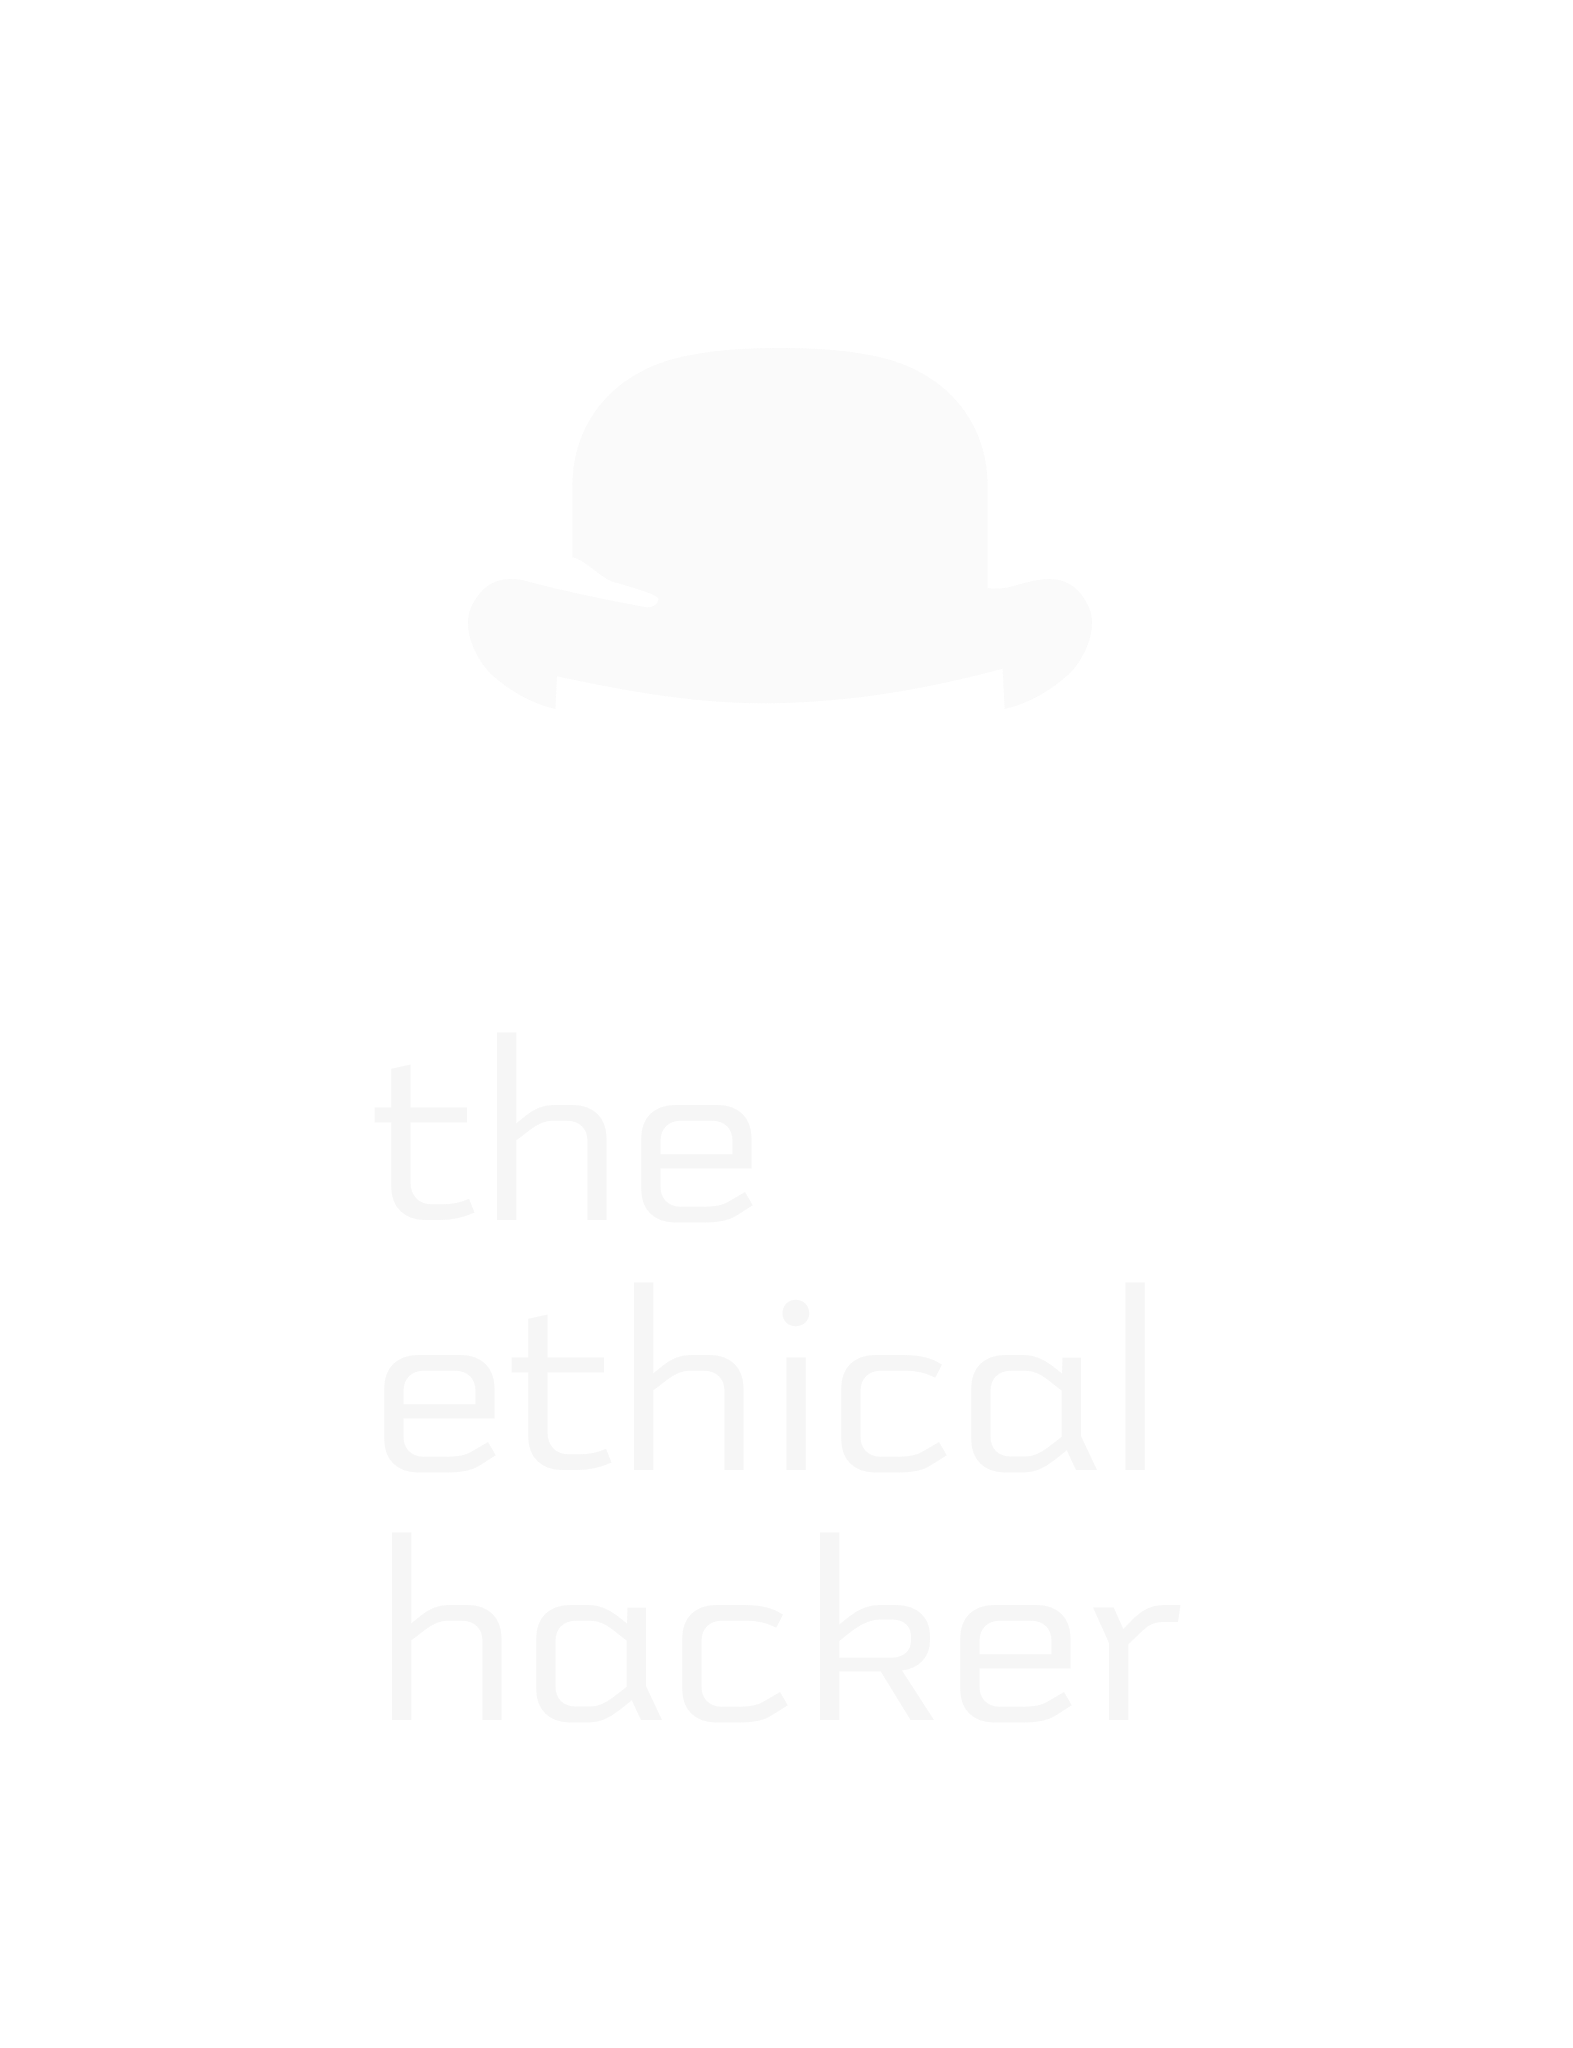 ethical hacker Ethical hacking is the ability to identify vulnerabilities in an organization's network or infrastructure, and then address the issues to prevent incidents or attacks.